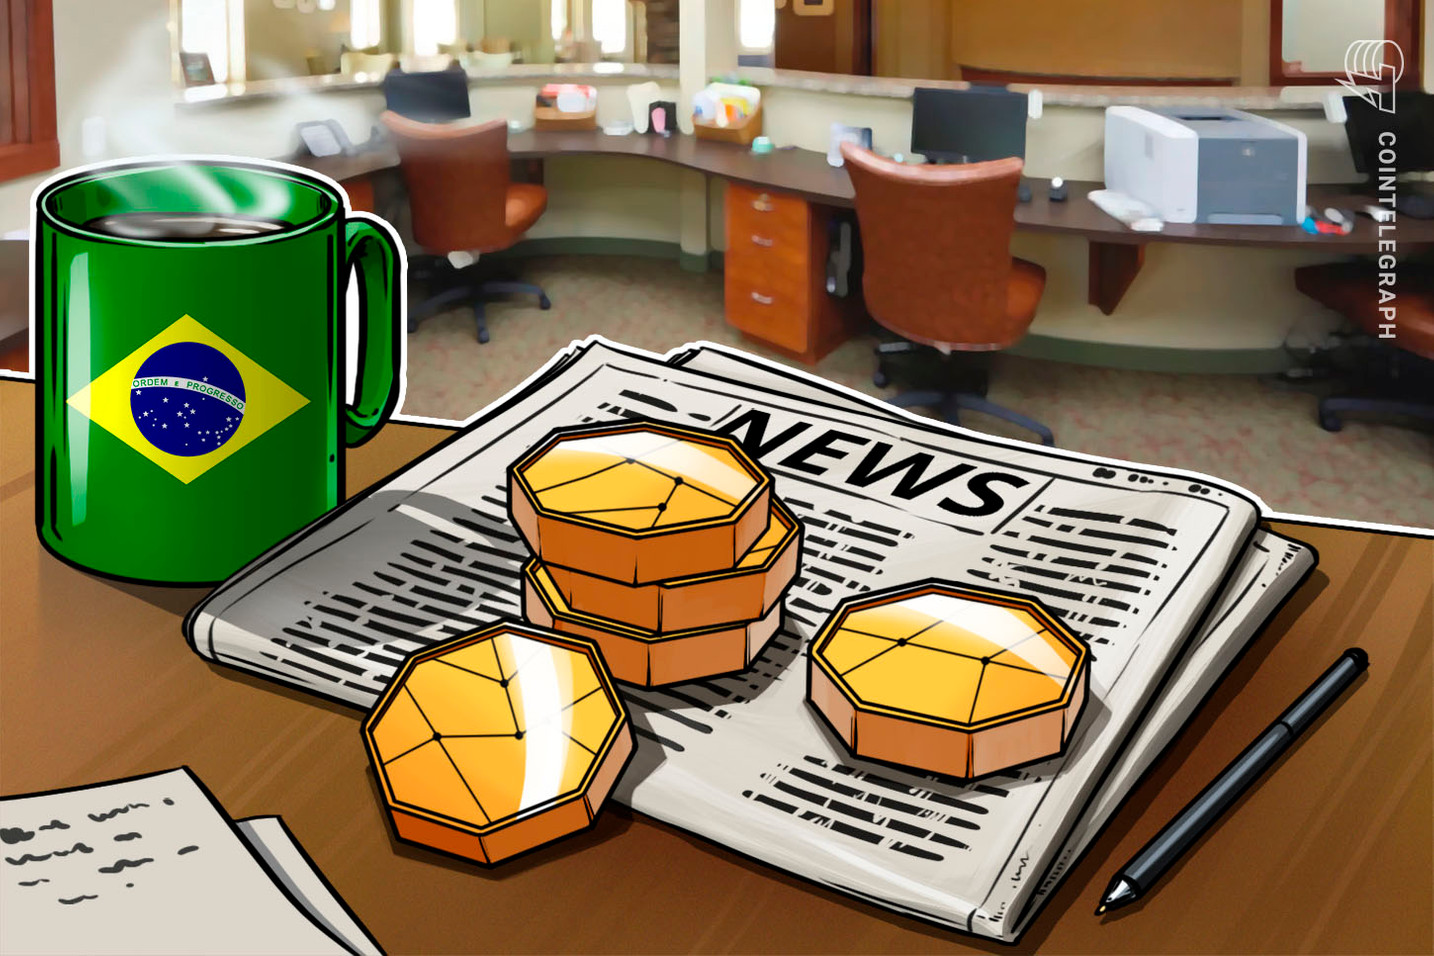 Cryptocurrency and Blockchain News From Brazil: Oct. 28-Nov. 3 in Review